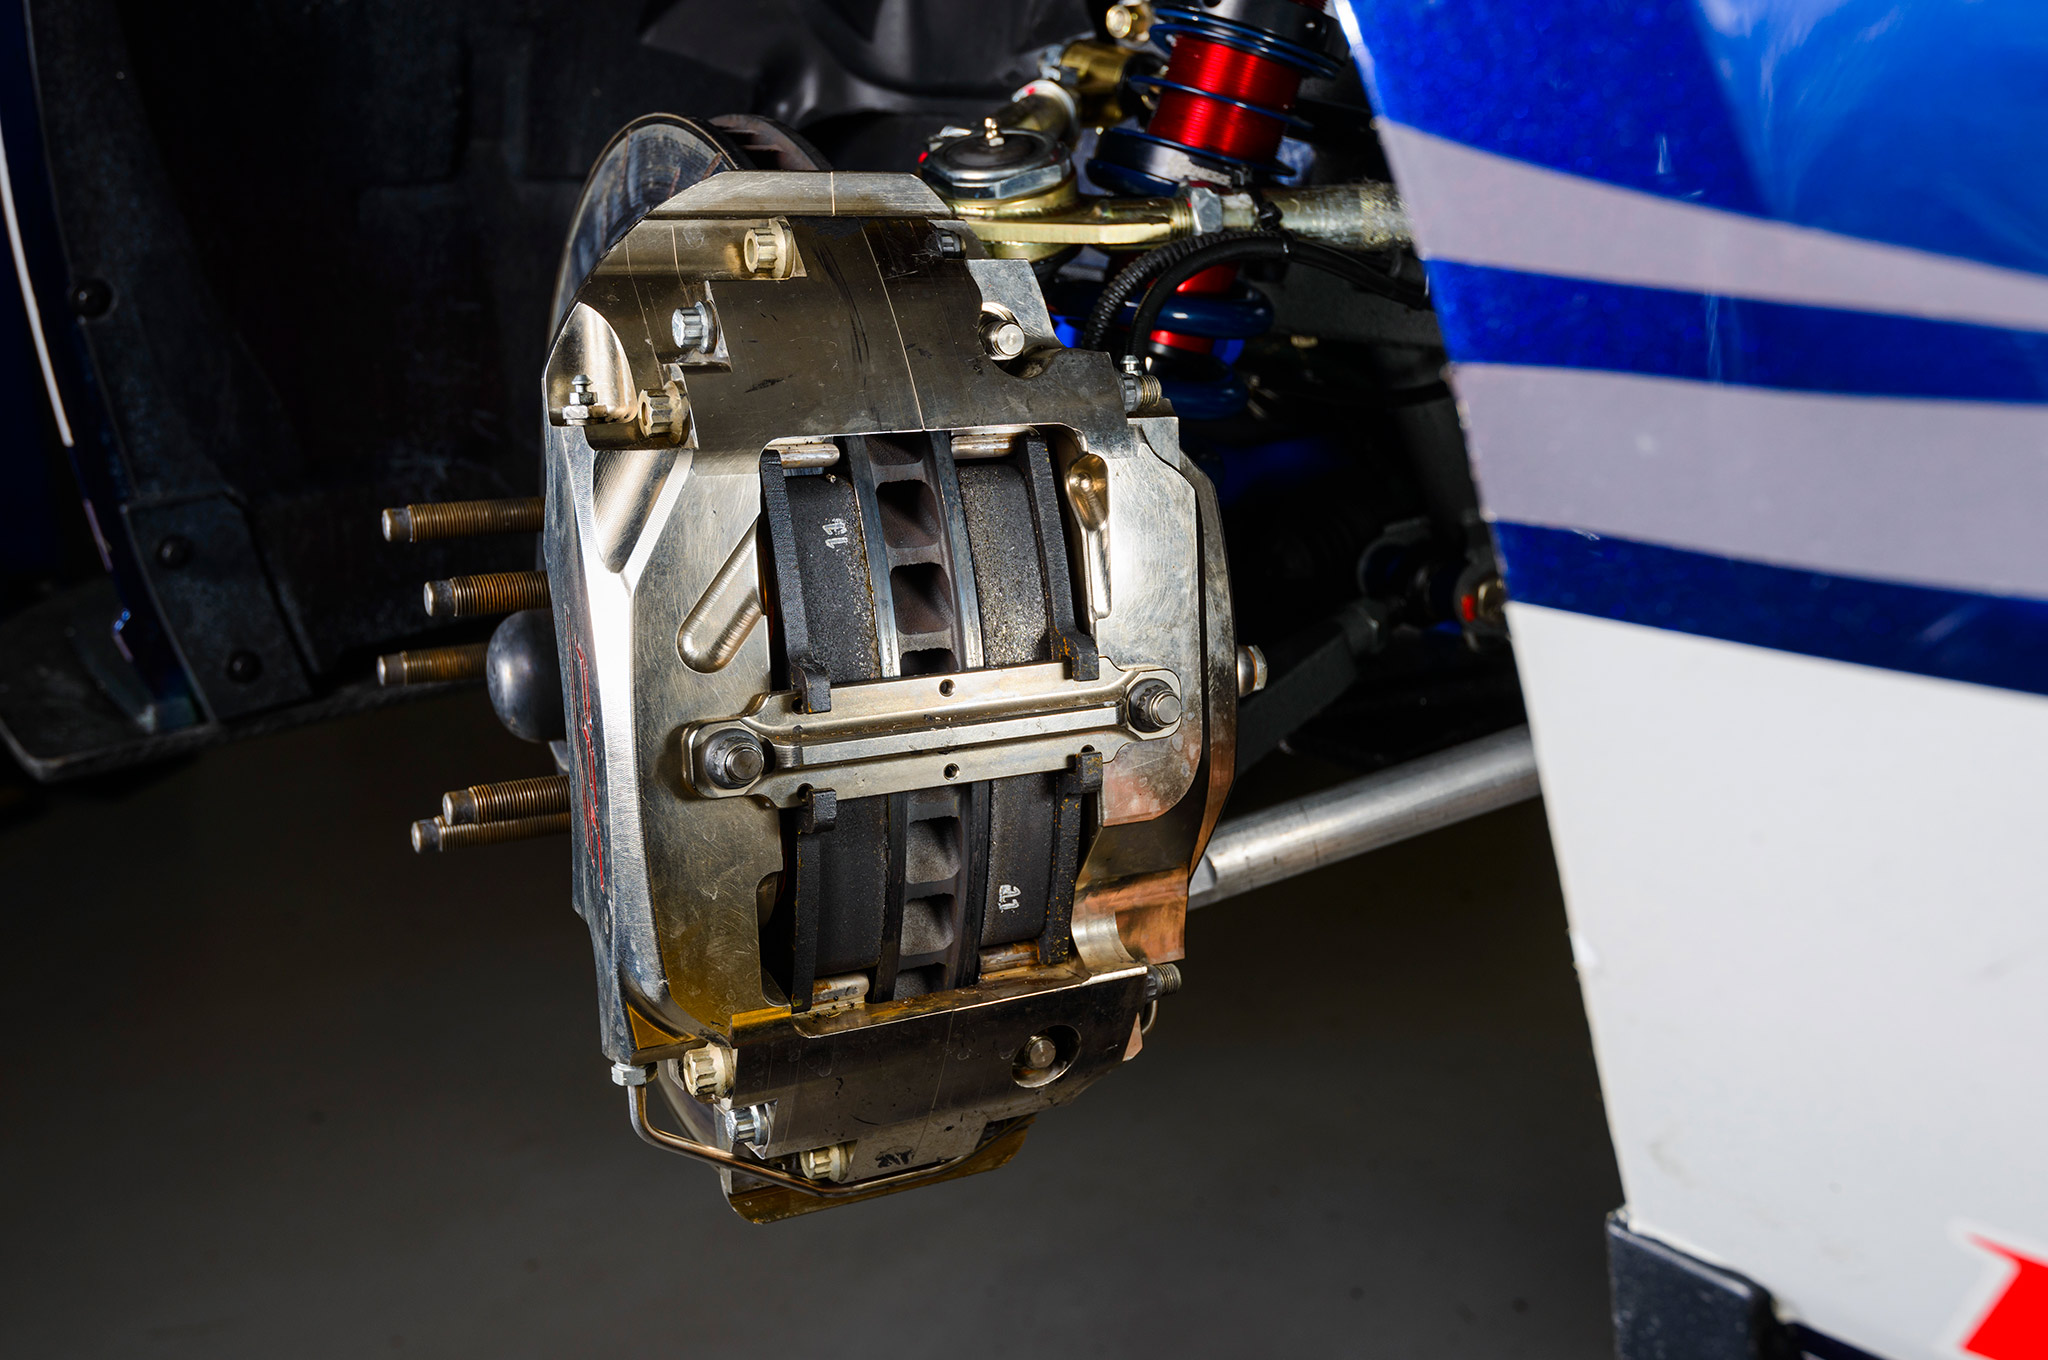 Got pads? The endurance-racing style six-piston calipers can accommodate pads that will endure several hours of racing. There's even a quick-change caliper bridge that pulls both pads simultaneously.